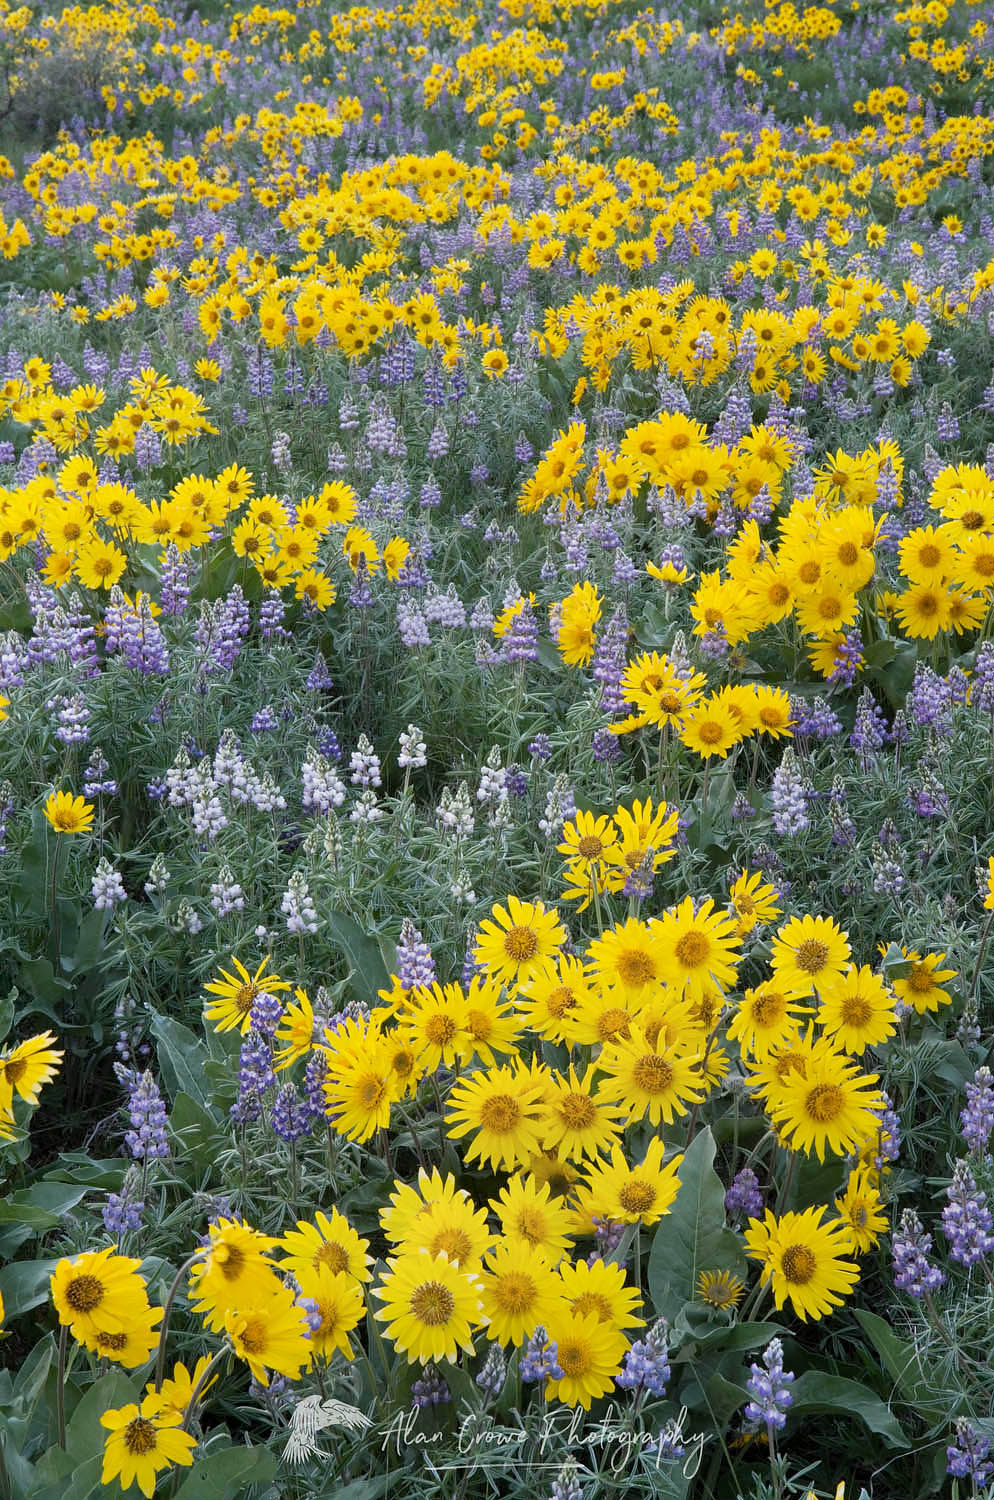 Methow Valley wildflowers, North Cascades Washington